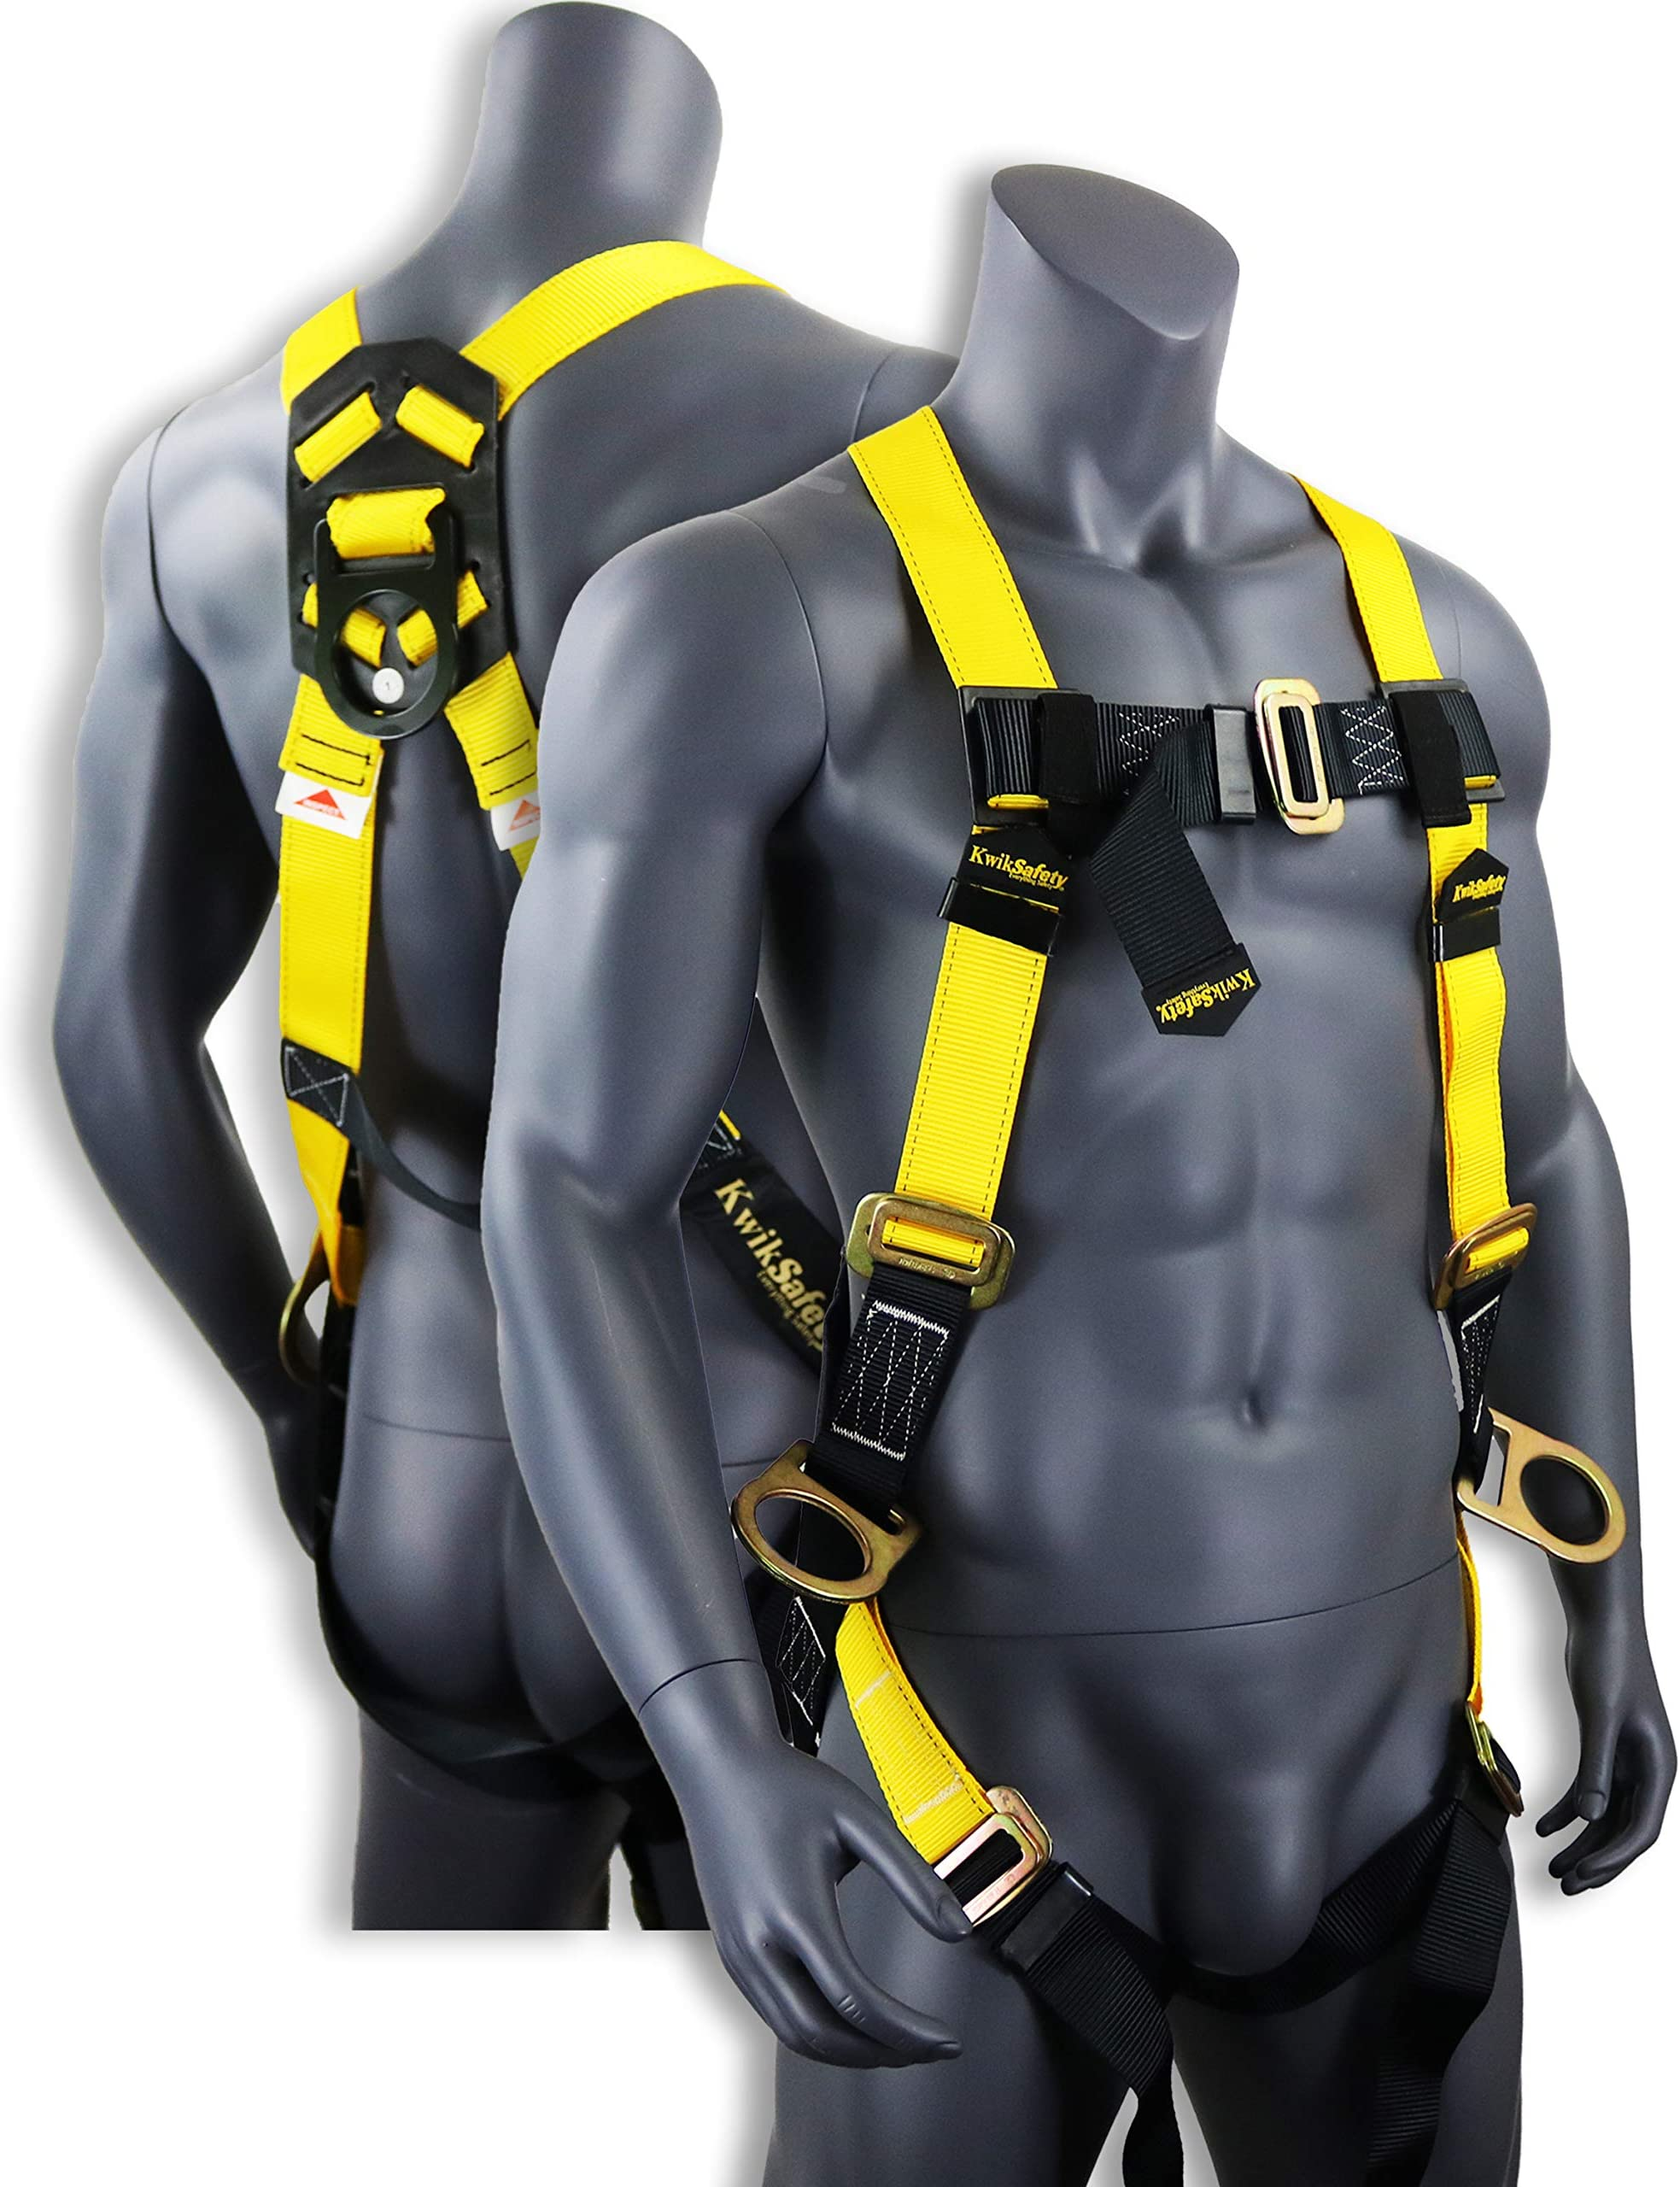 osha fall protection harness inspection guidelines data wiring u2022 rh kshjgn pw